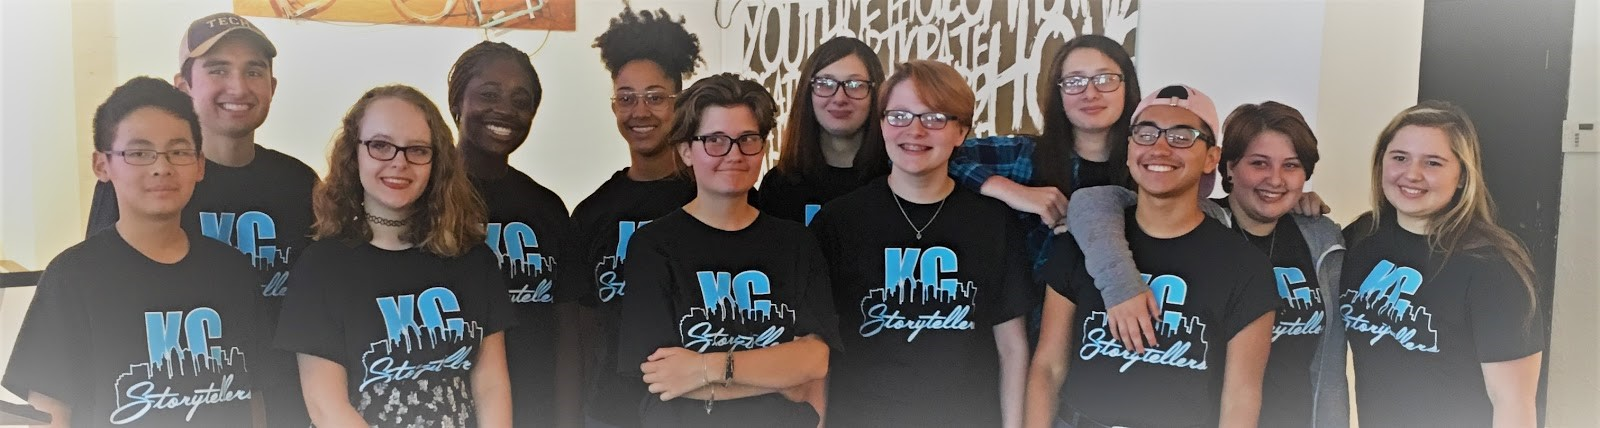 Students at the 2018 Stories for Justice Summer Writing Camp.